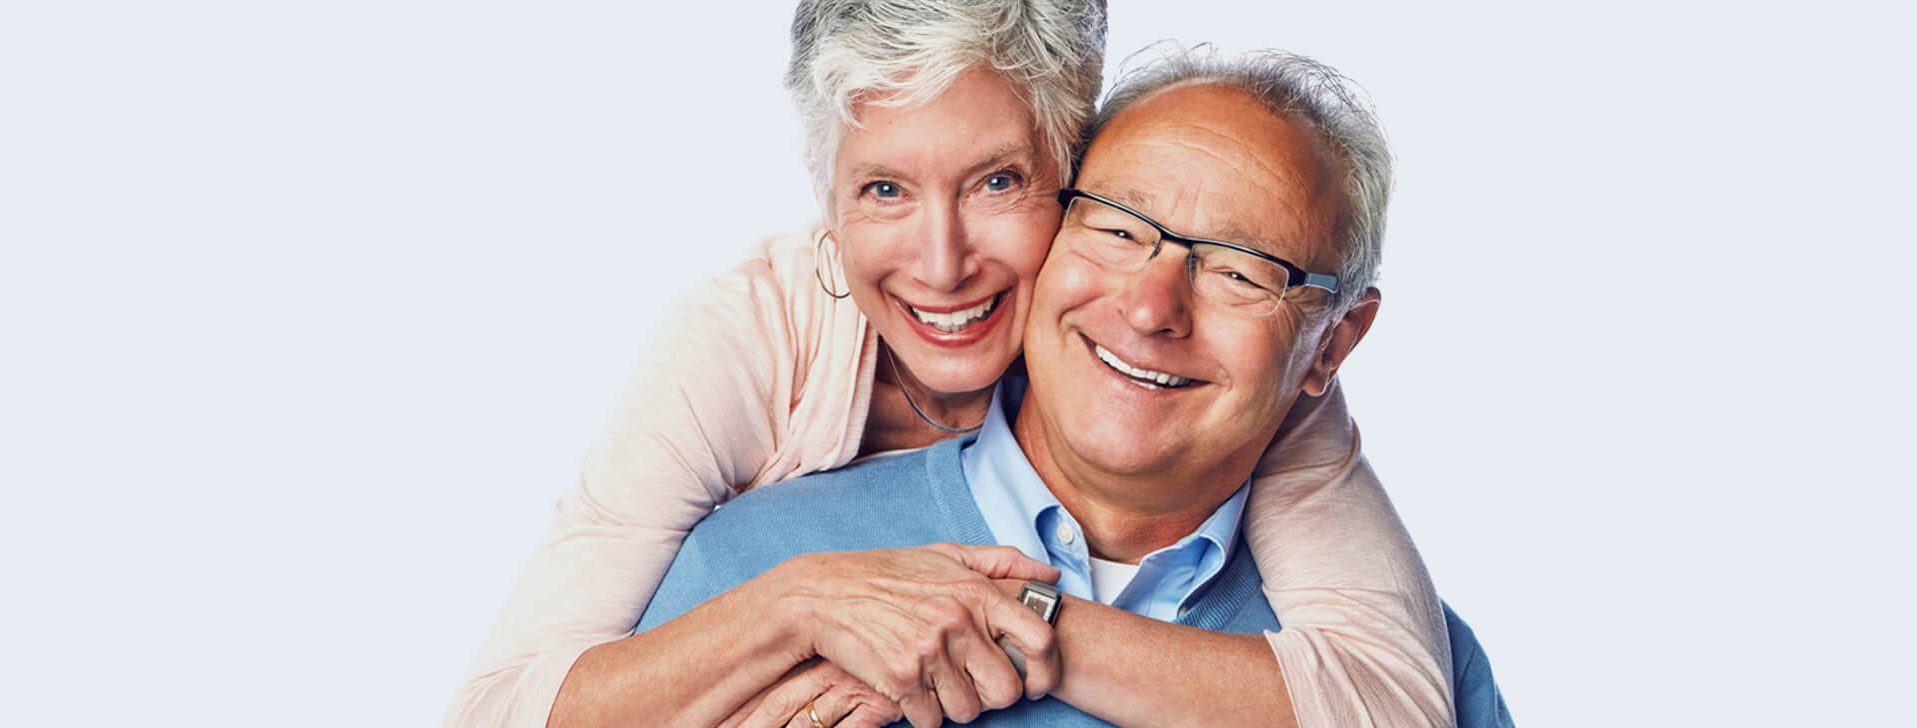 Are you missing teeth? Dental Implants could be the solution